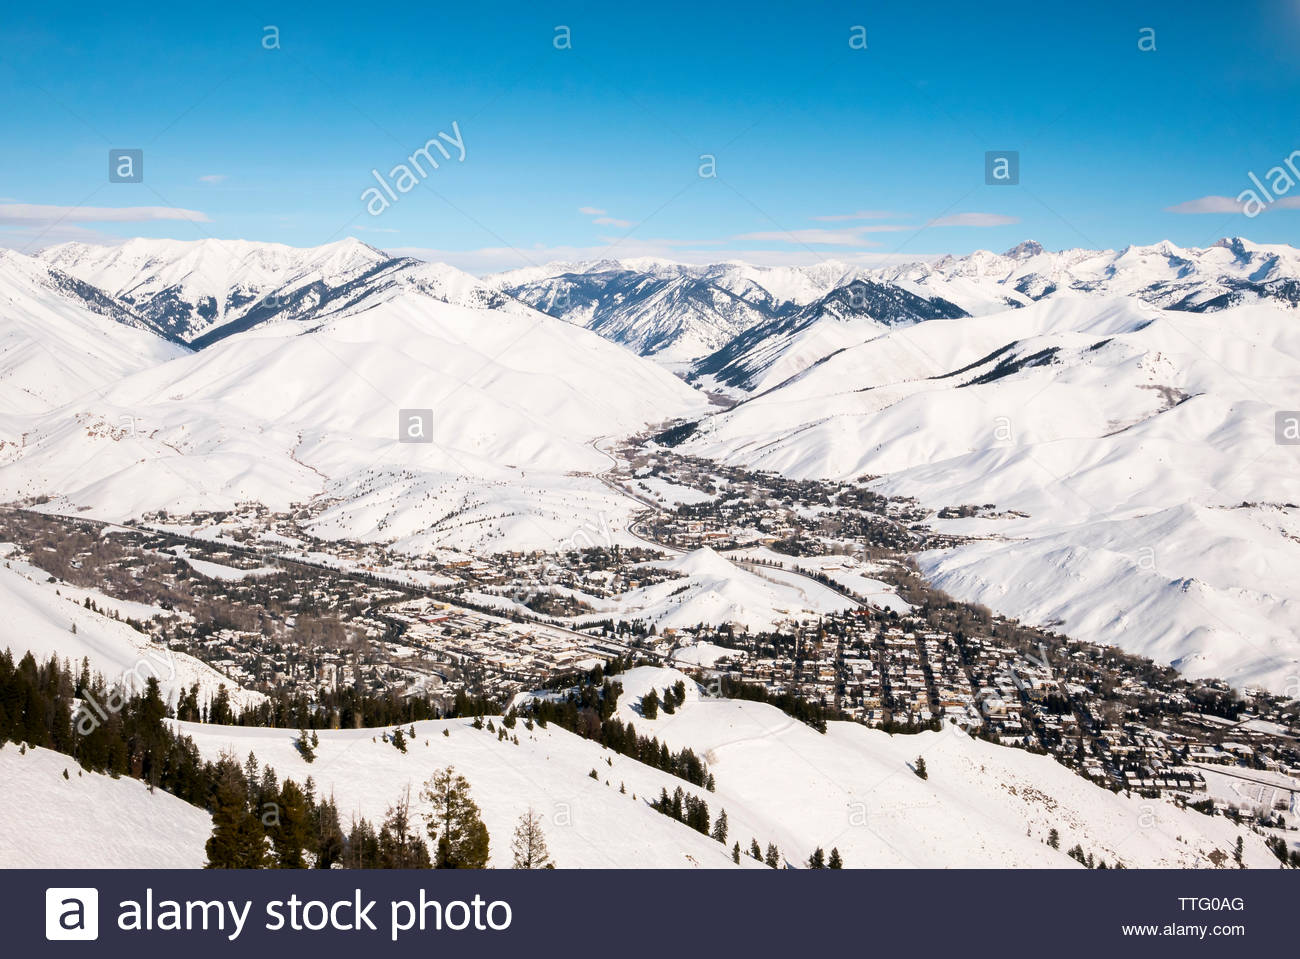 The town of Sun Valley on a sunny blue bird day in Sun Valley, Idaho. - Stock Image